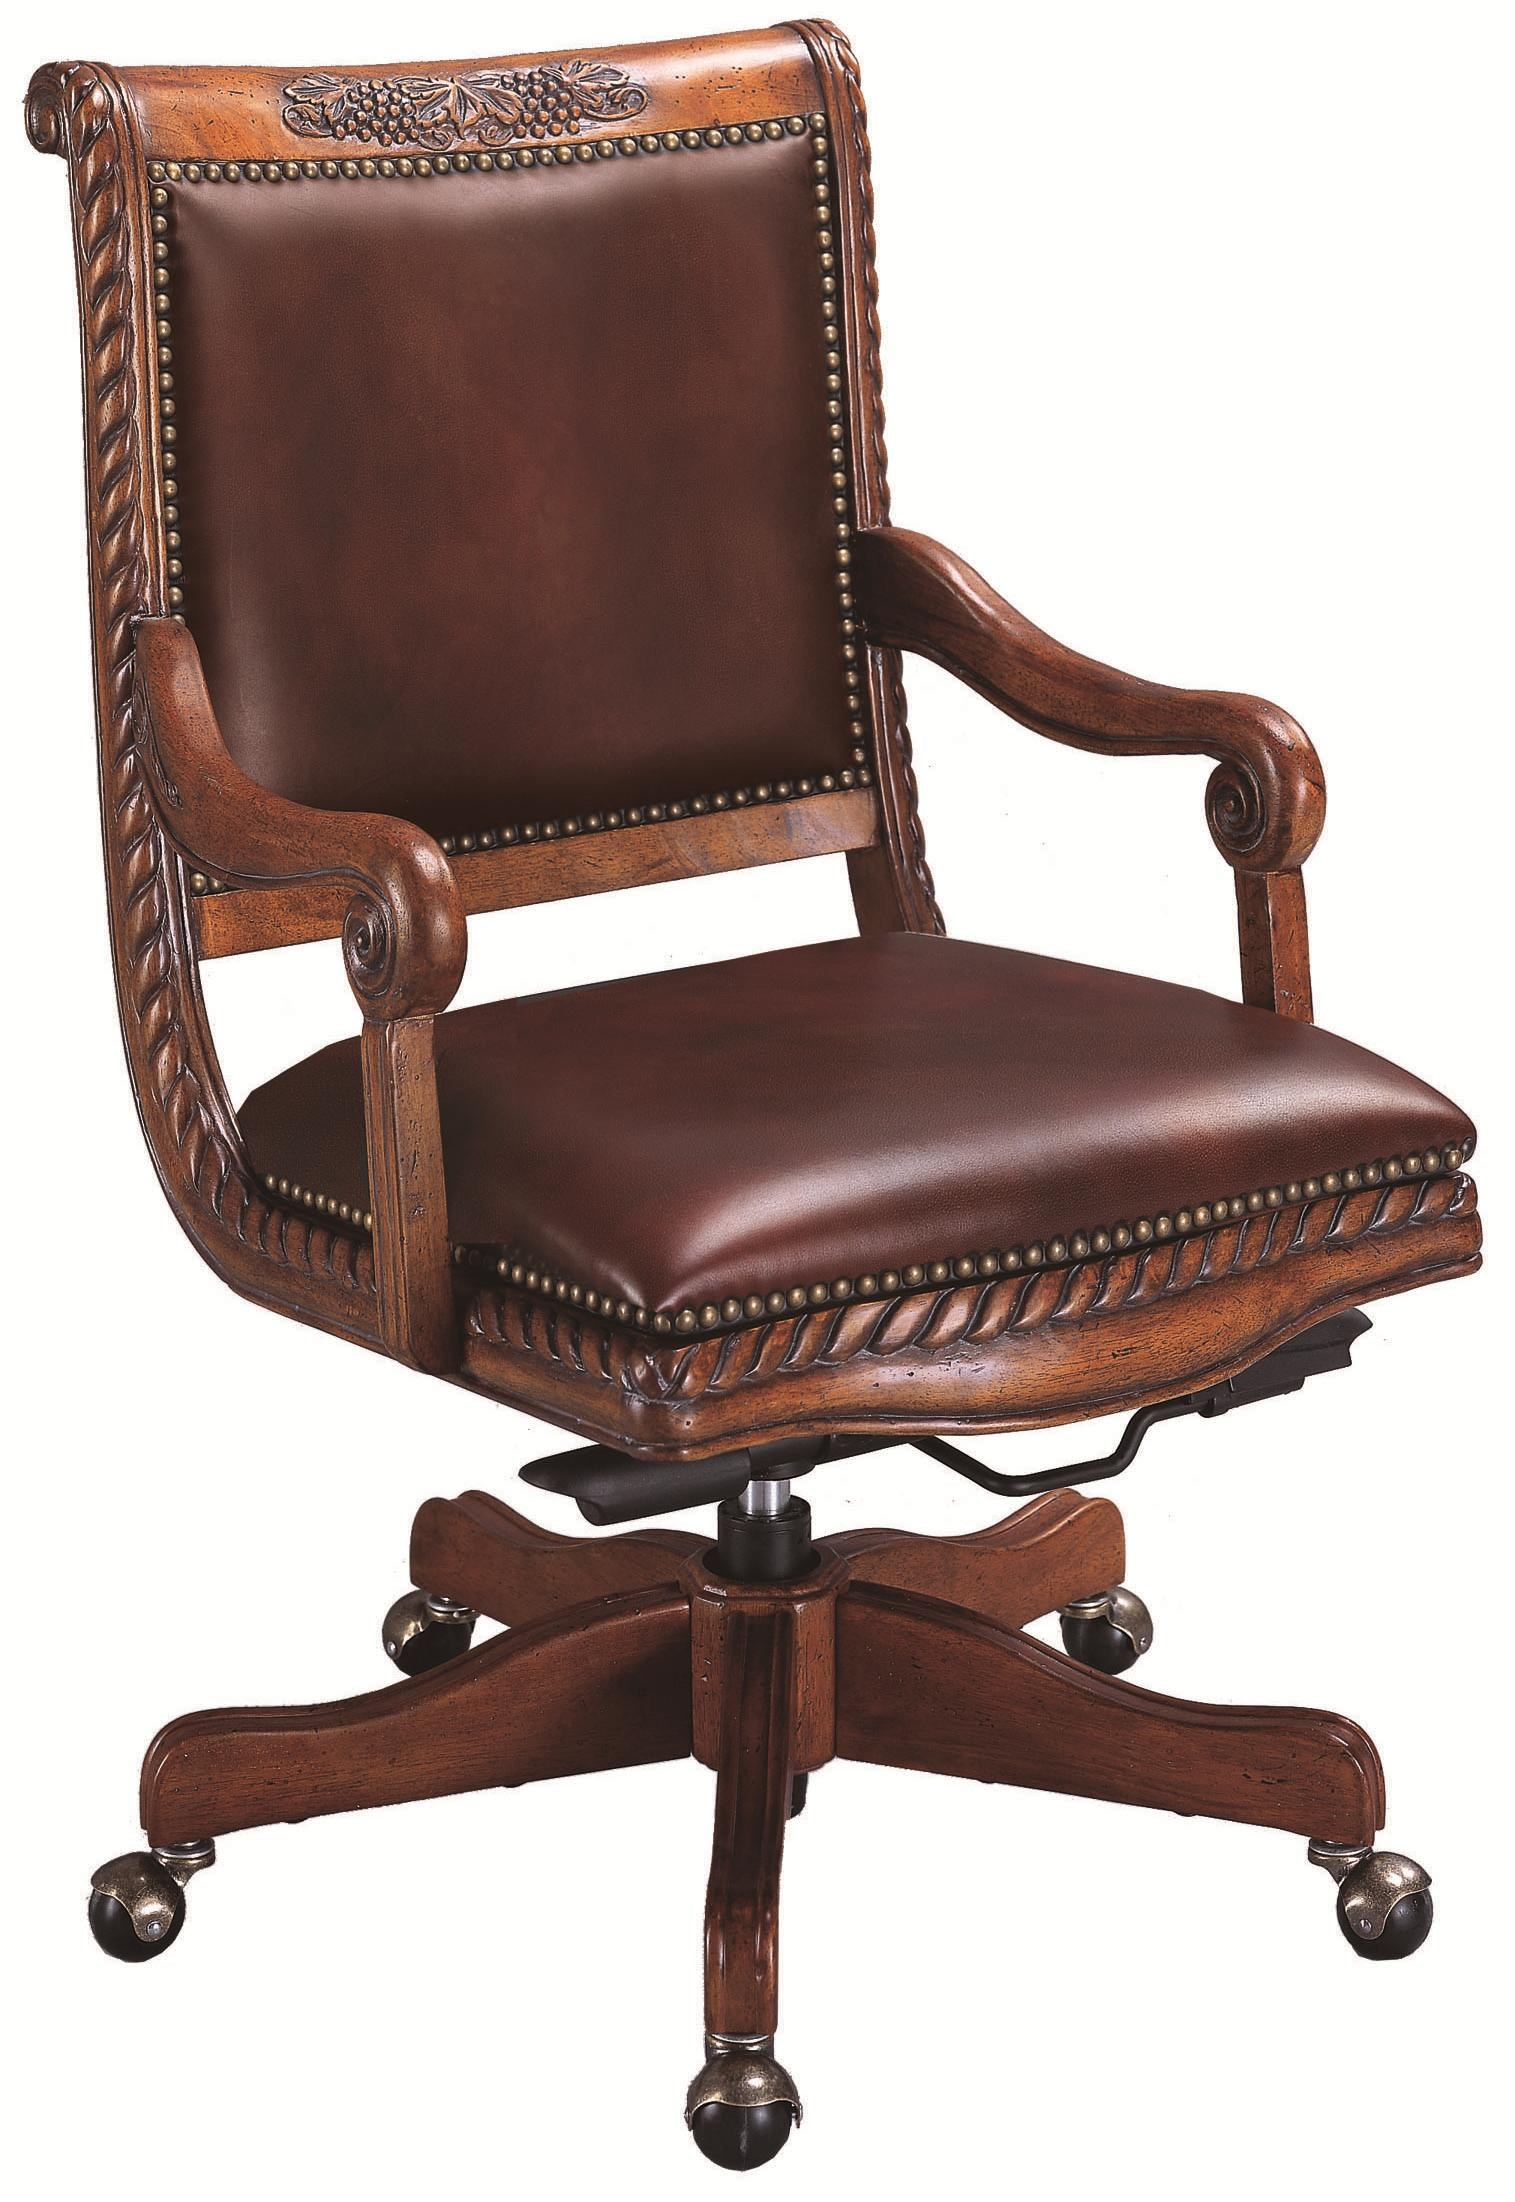 Aspenhome Napa Leather Office Chair   Baeru0027s Furniture   Office Side Chair